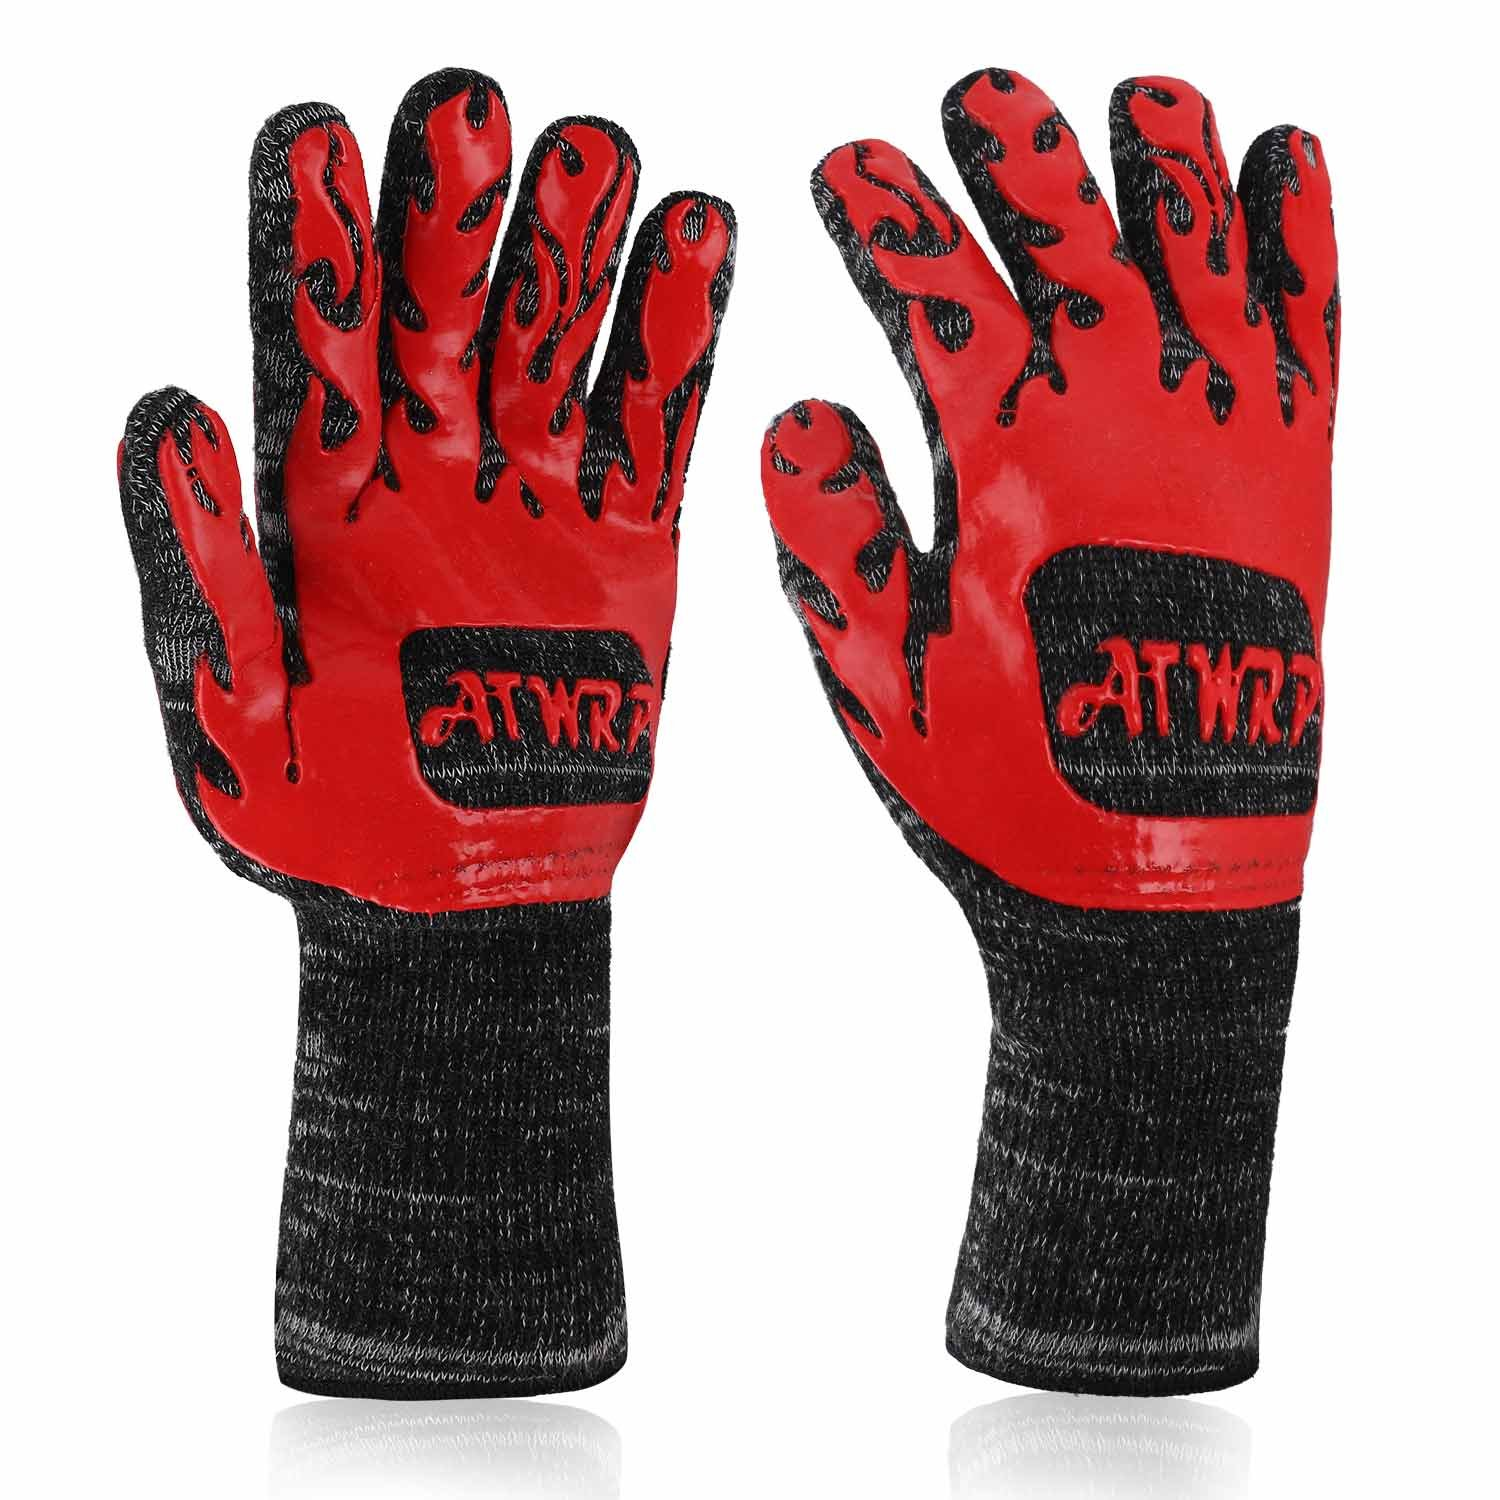 ATWRP FIREPROOF 932°F Extreme Heat Resistant BBQ Gloves by for Cooking Grilling Barbecue Charcoal Grill Smoker Tools Hot Ovens with Fingers Double Layered by ATWRP